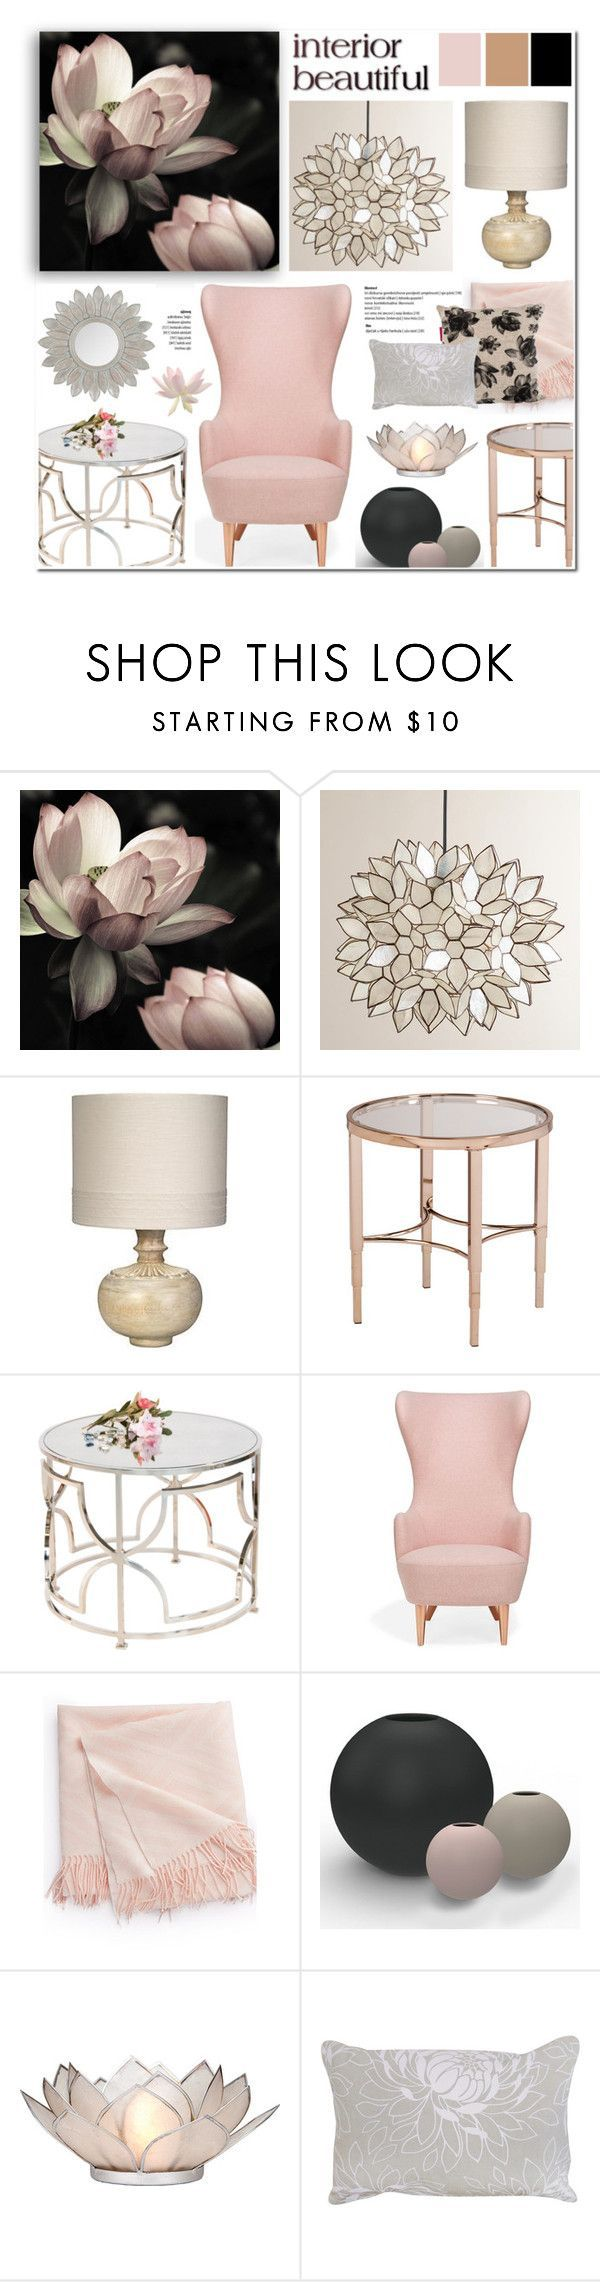 lotus inspired spa designinspired homeshome decor accessoriescost